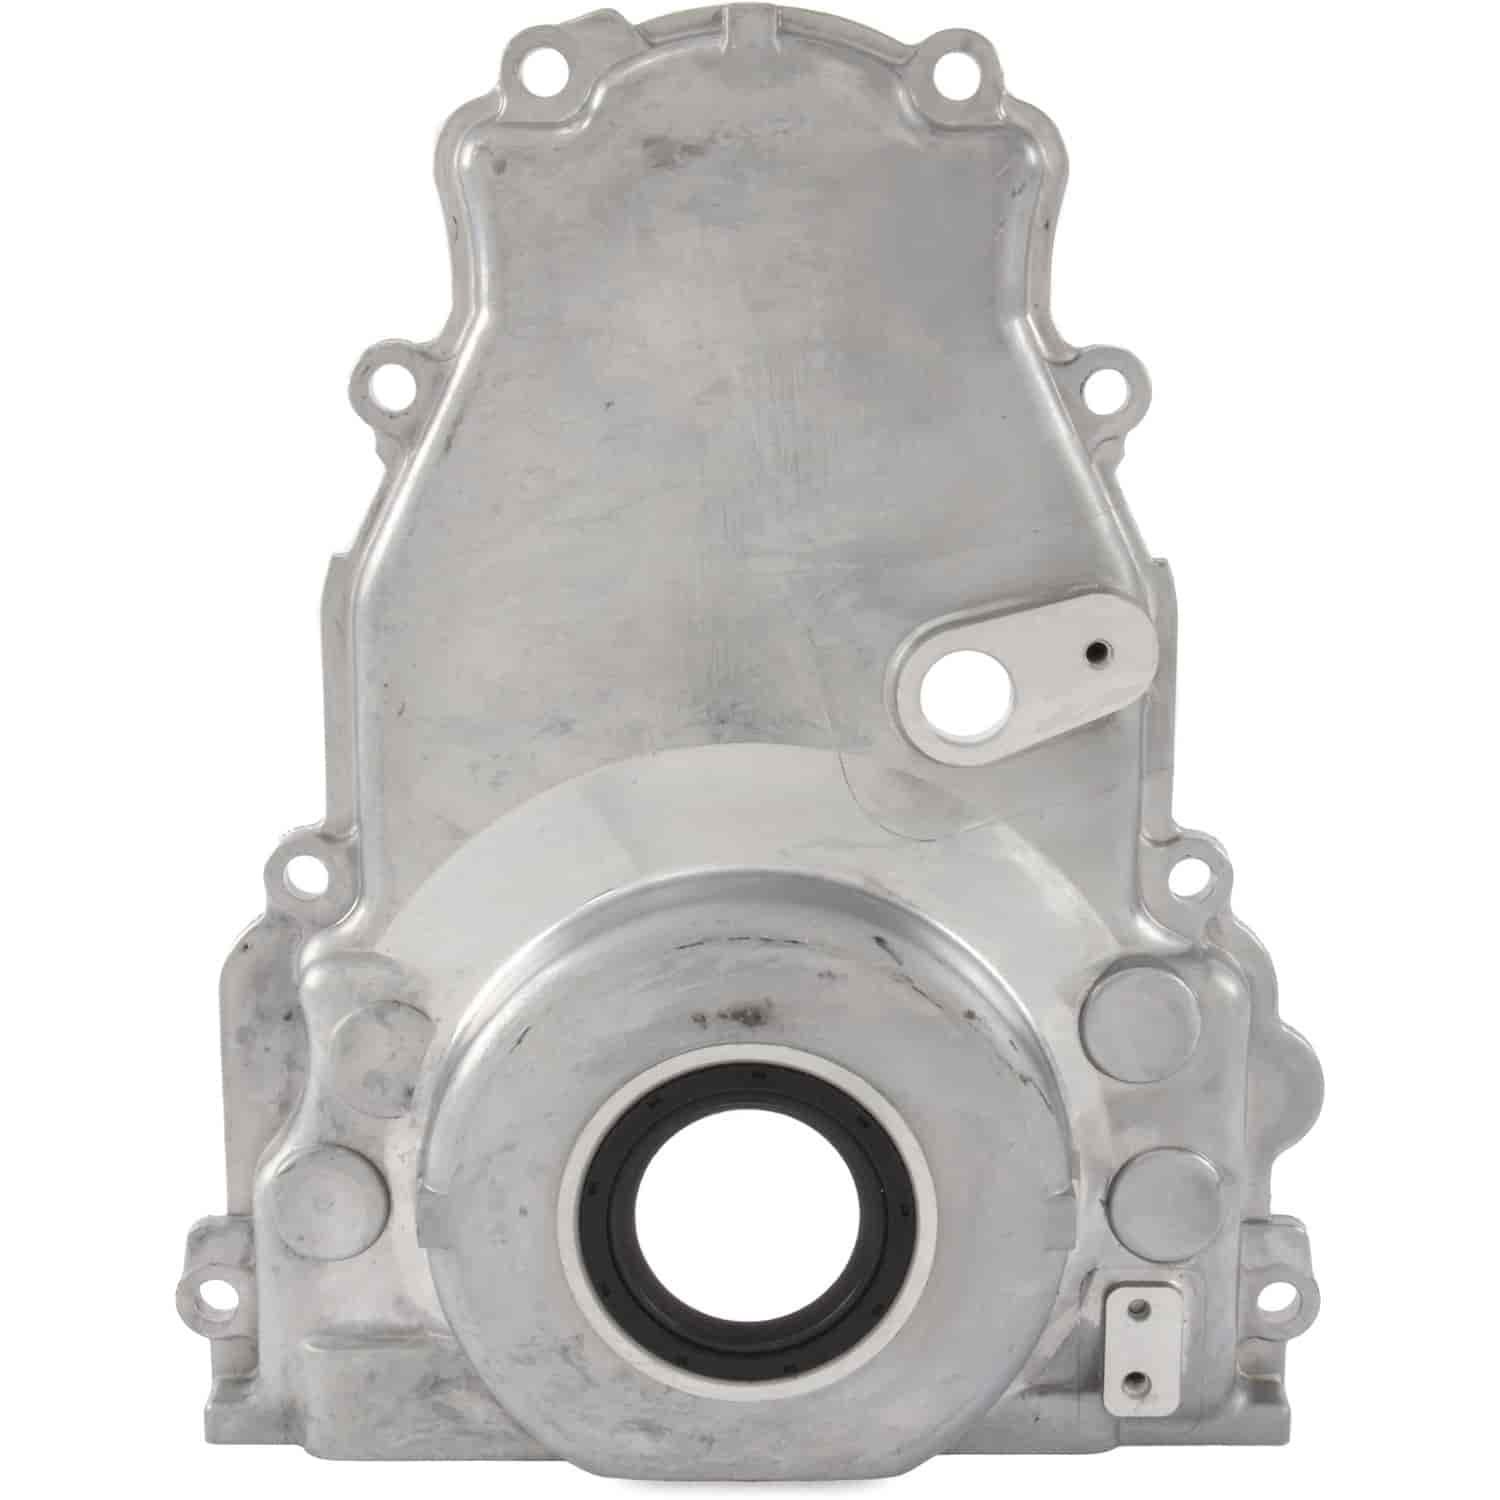 JEGS Performance Products 50322 GM LS Timing Cover Fits